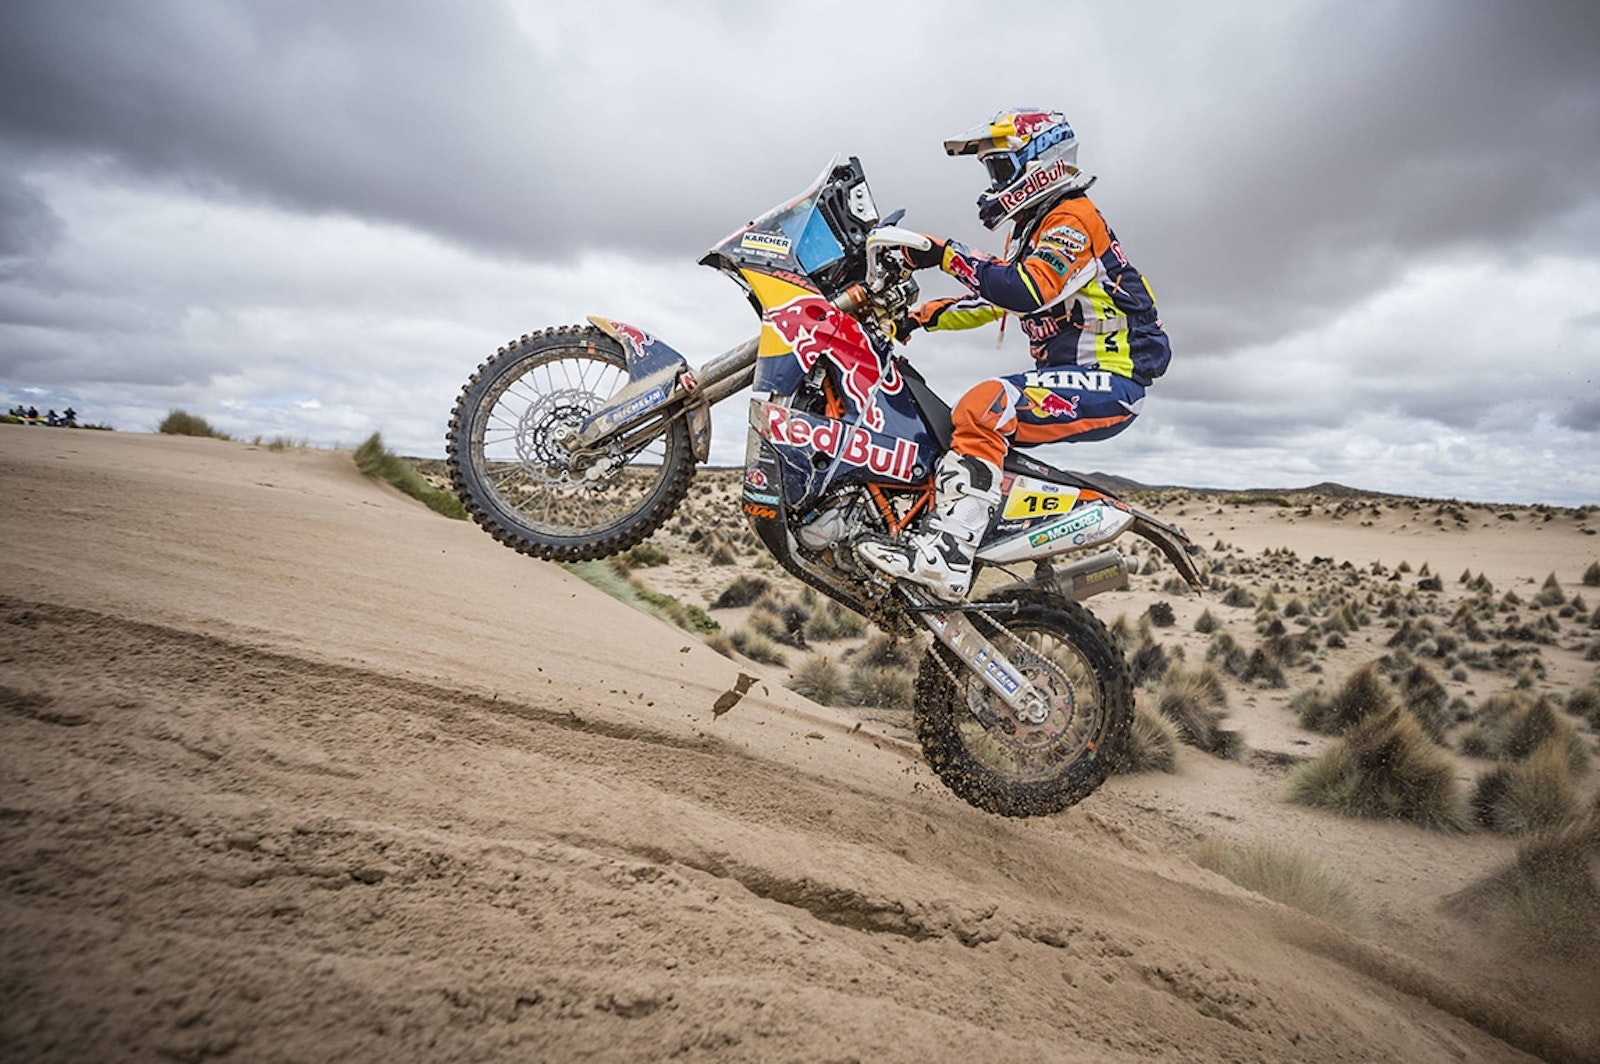 Matthias Walkner (AUT) of Red Bull KTM Factory Team races during stage 07 of Rally Dakar 2017 from La Paz to Uyuni, Bolivia on January 09, 2017 // Marcelo Maragni/Red Bull Content Pool // P-20170109-01362 // Usage for editorial use only // Please go to www.redbullcontentpool.com for further information. //